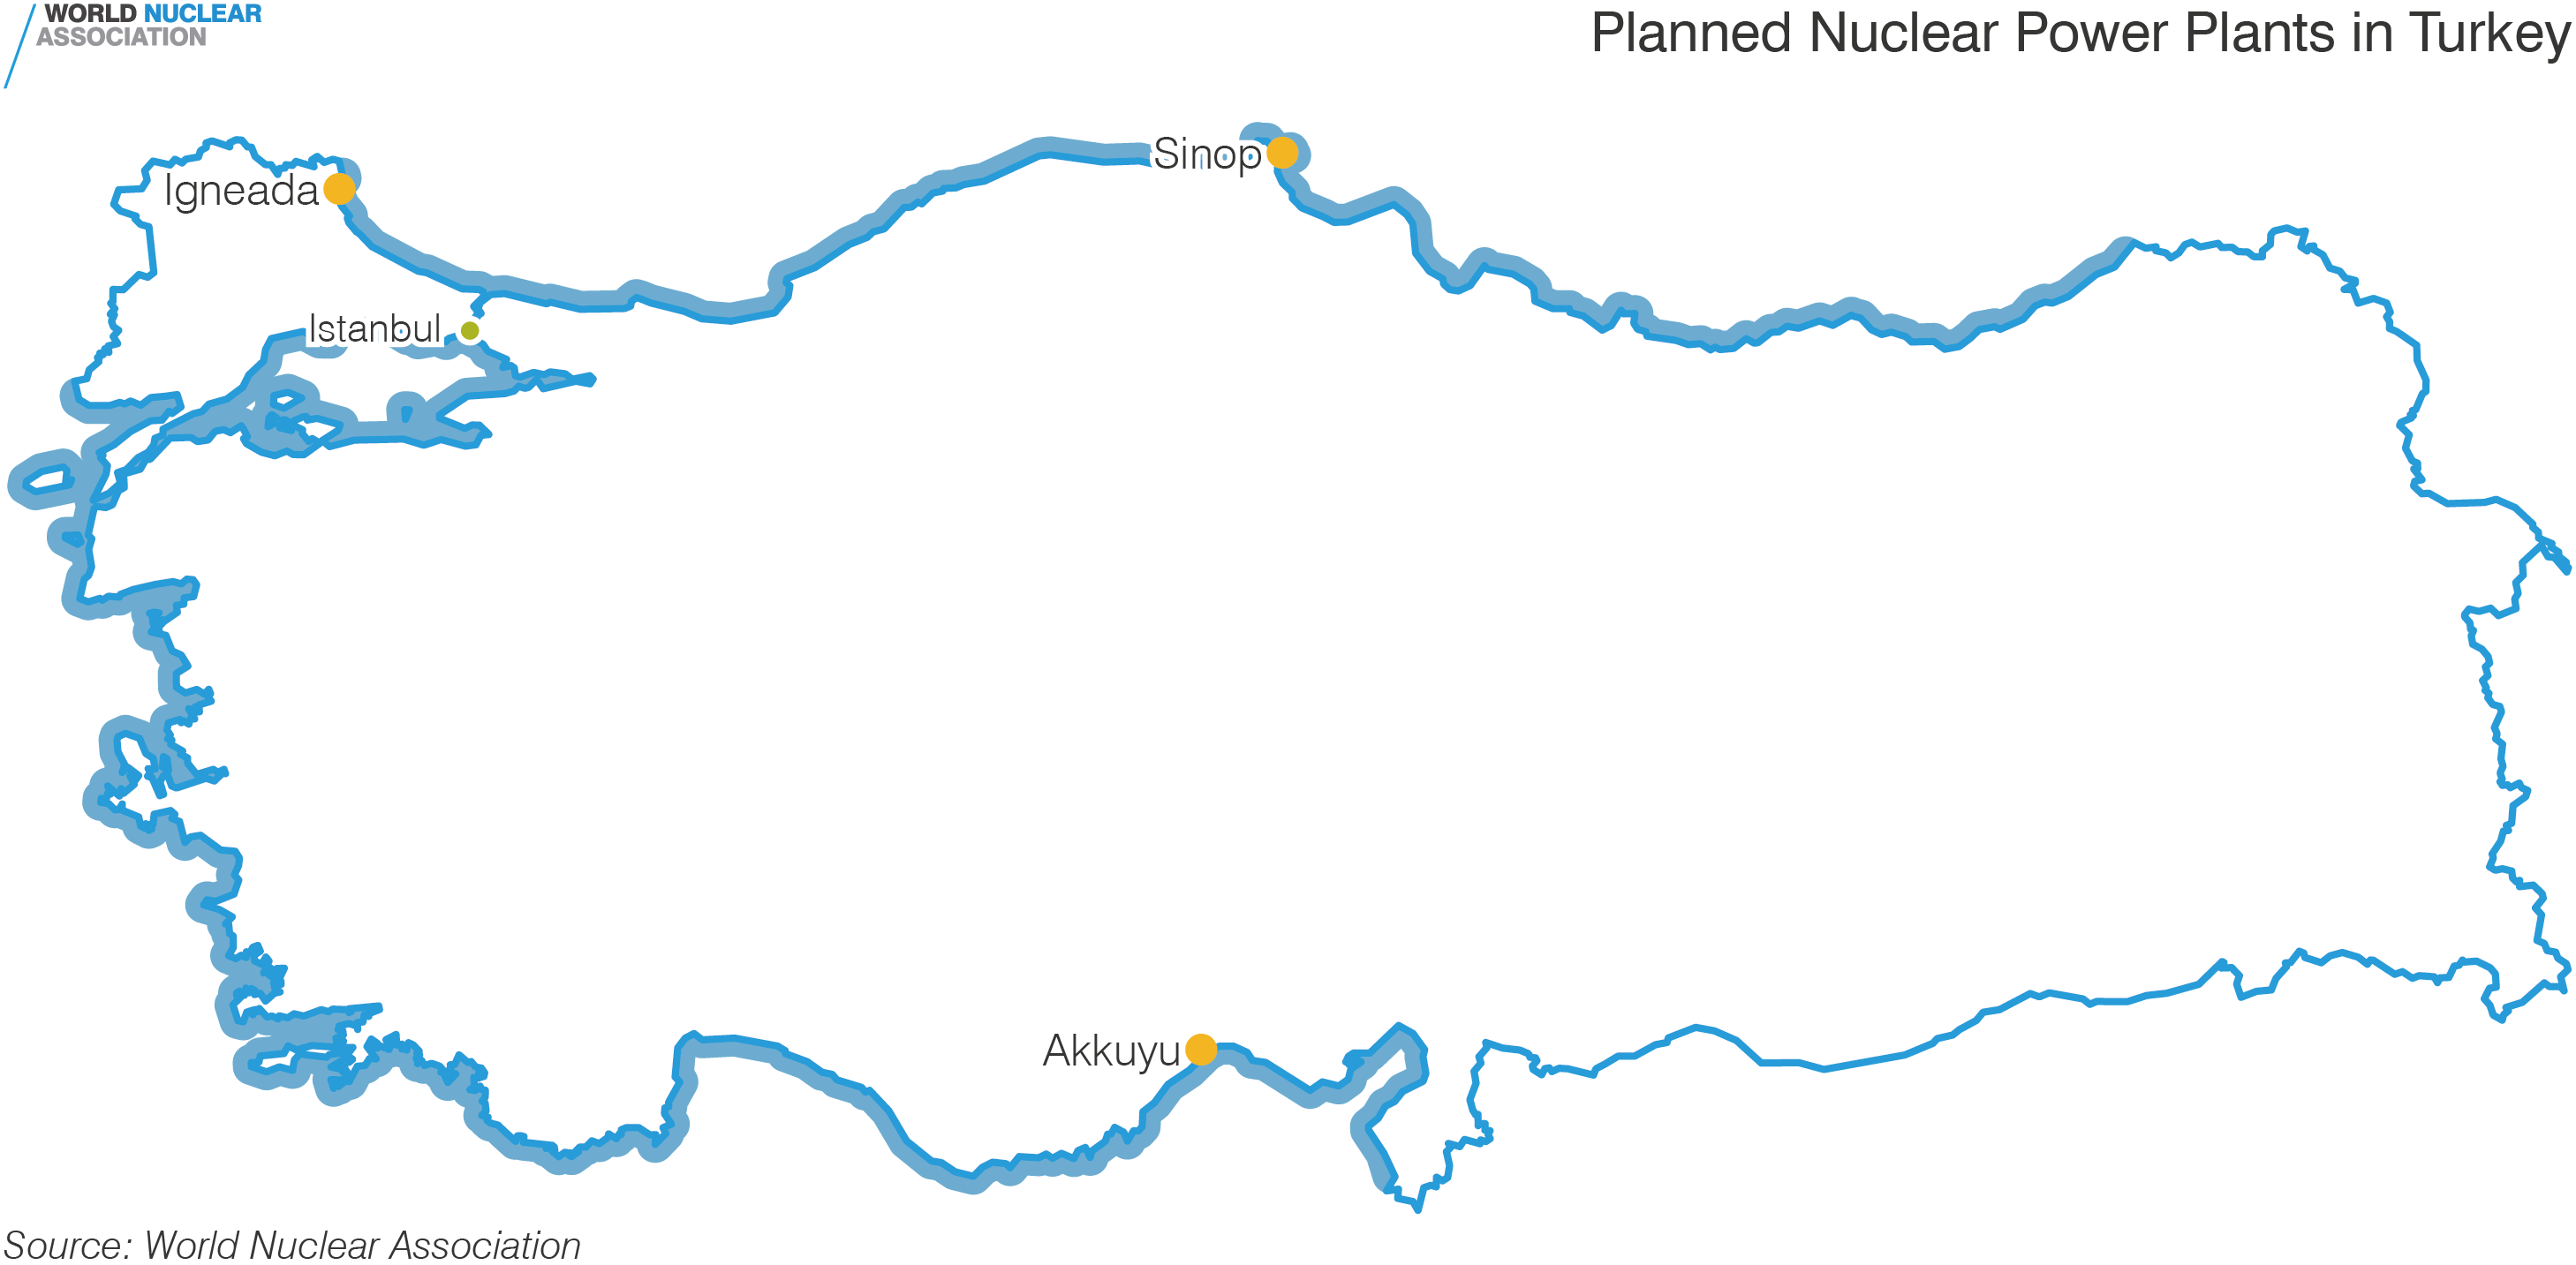 Planned Nuclear Power Plants in Turkey